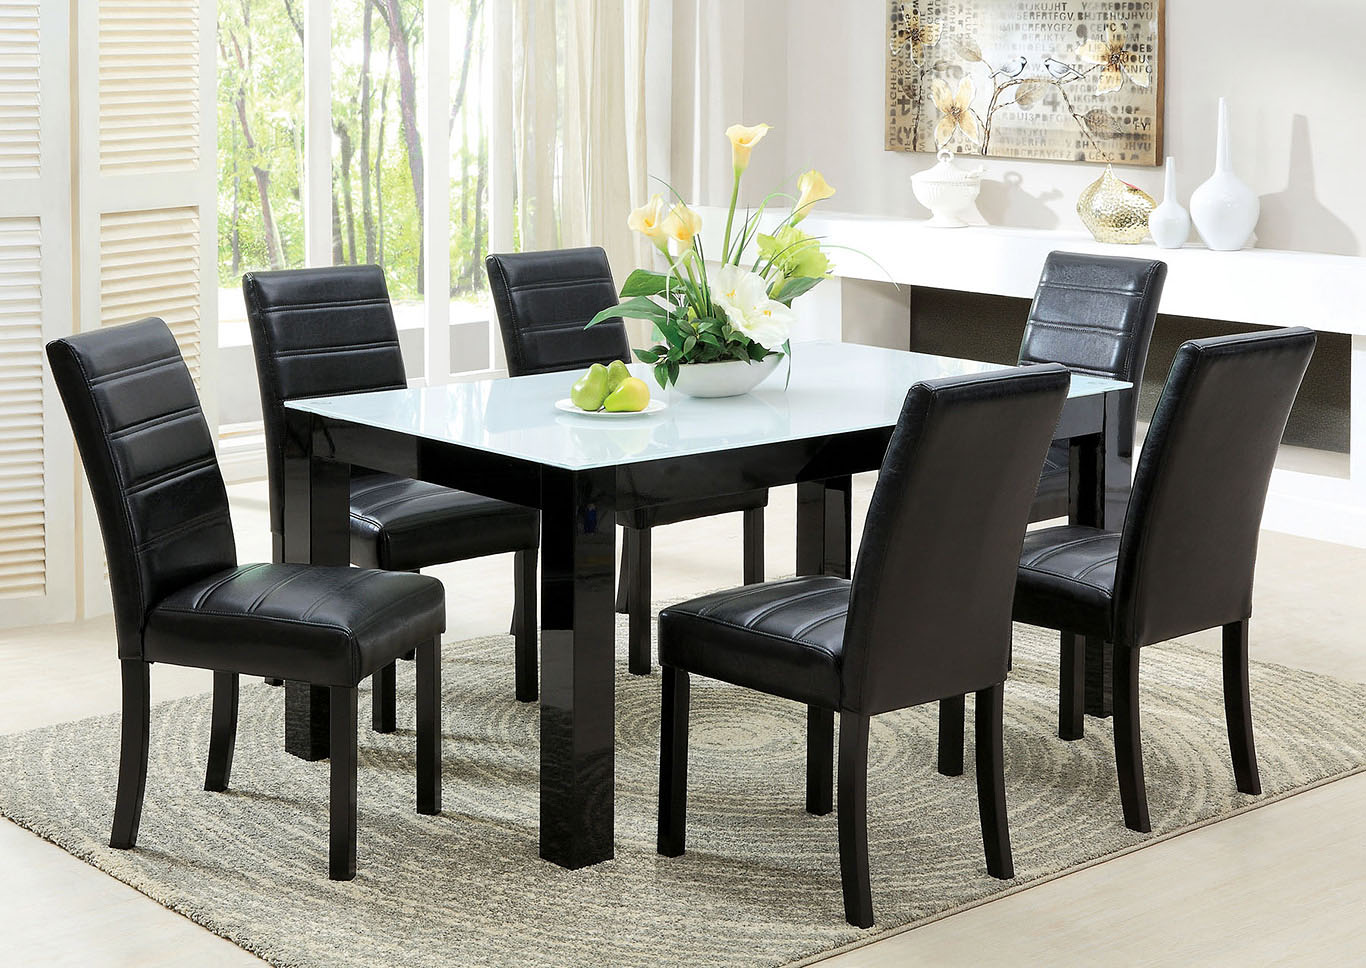 Elise I Black Rectangular Dining Table,Furniture of America